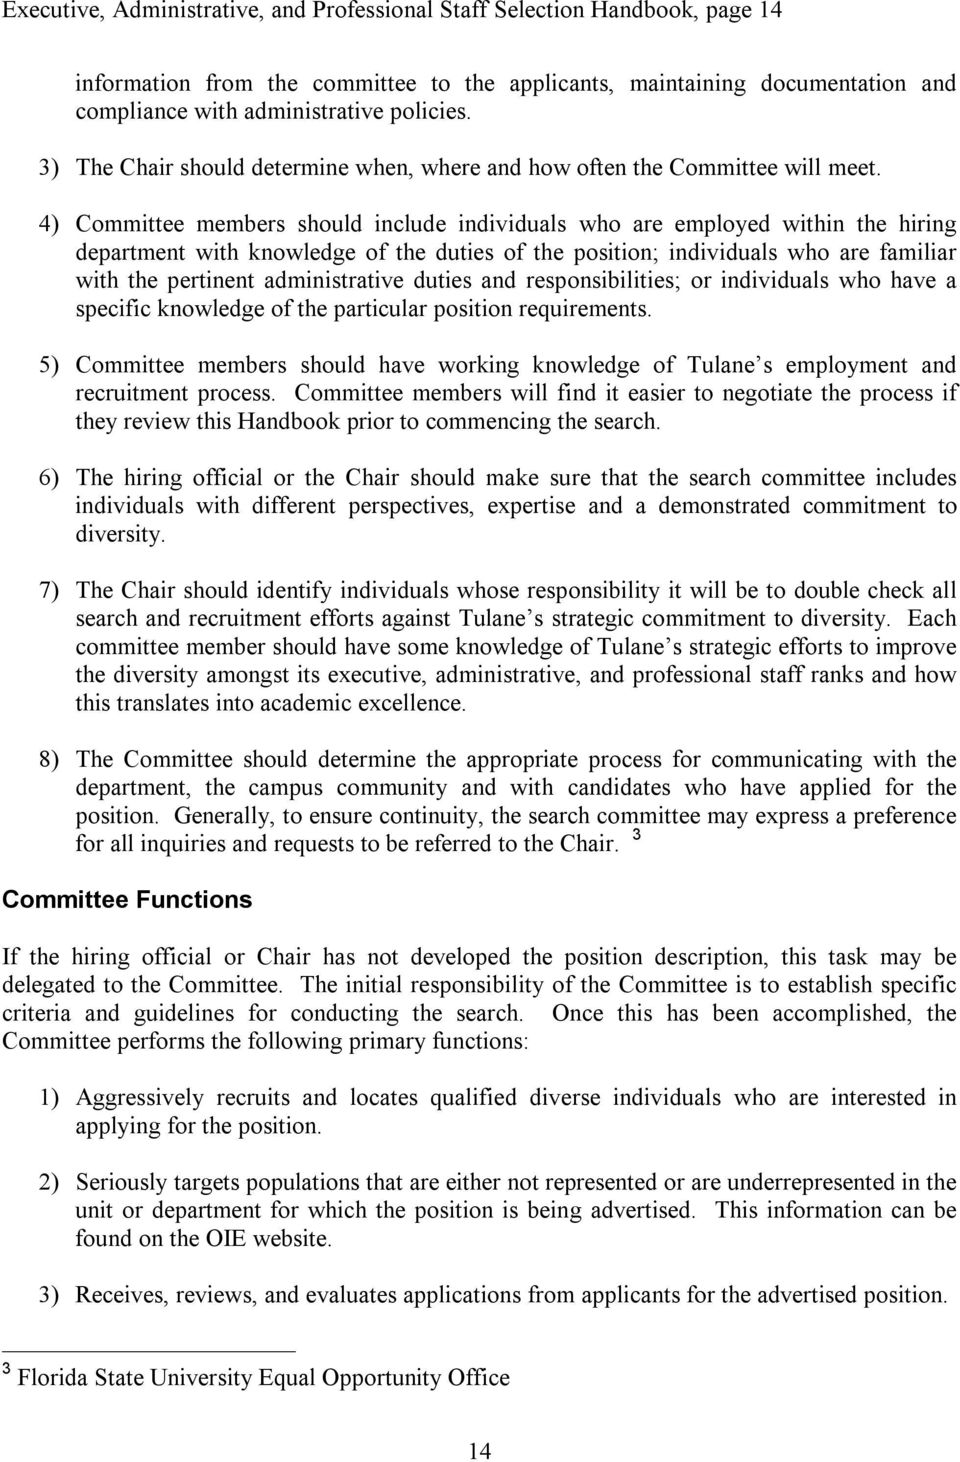 4) Committee members should include individuals who are employed within the hiring department with knowledge of the duties of the position; individuals who are familiar with the pertinent